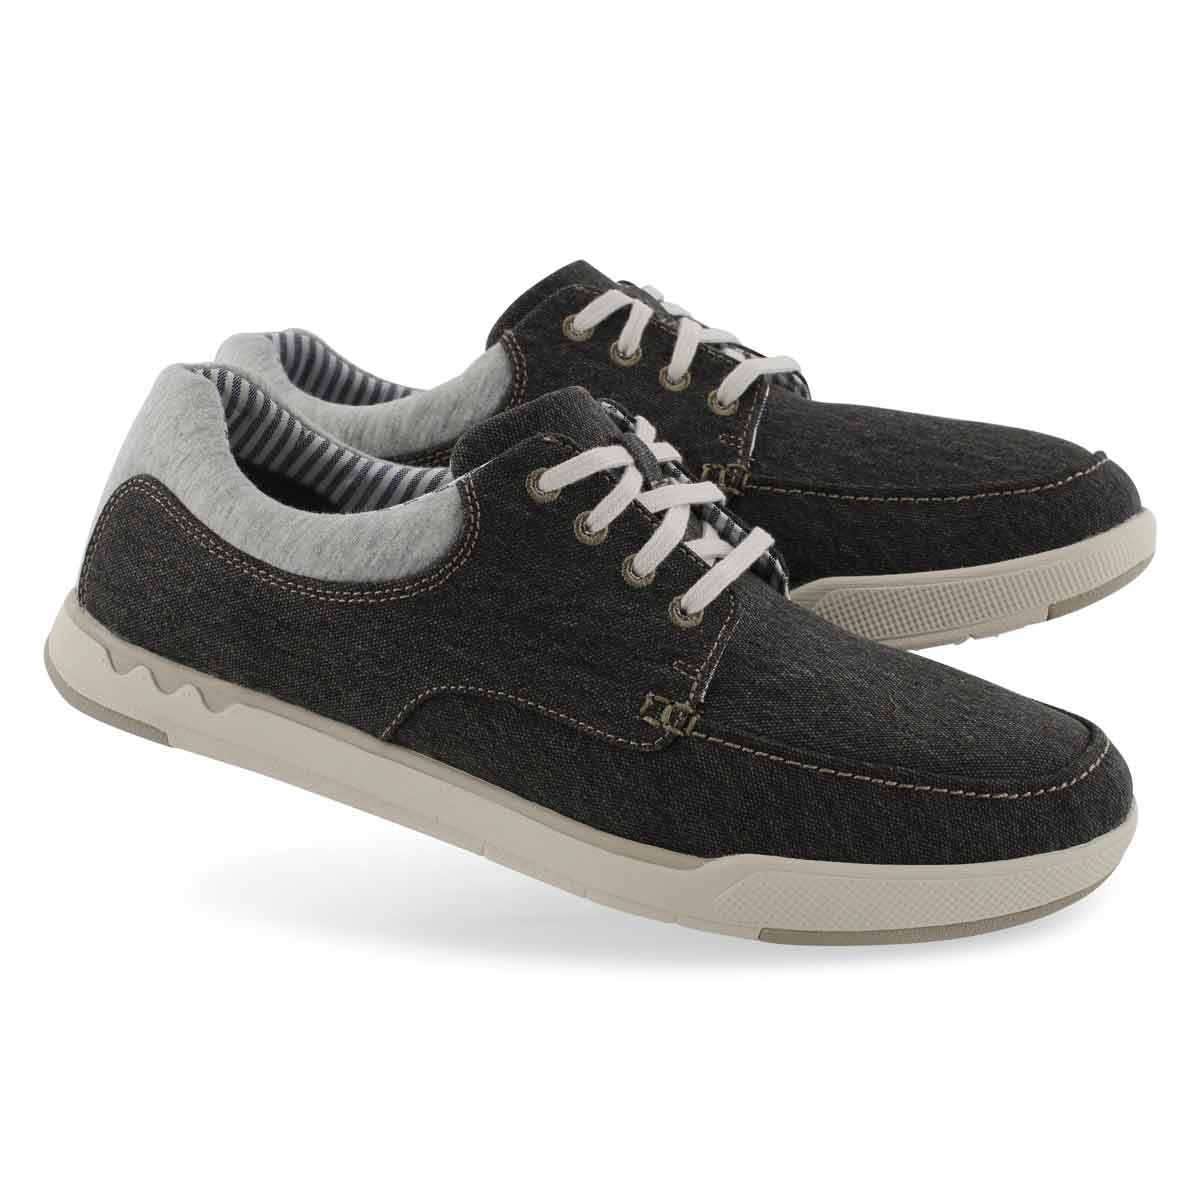 Mns Step Isle Lace blk casual shoe